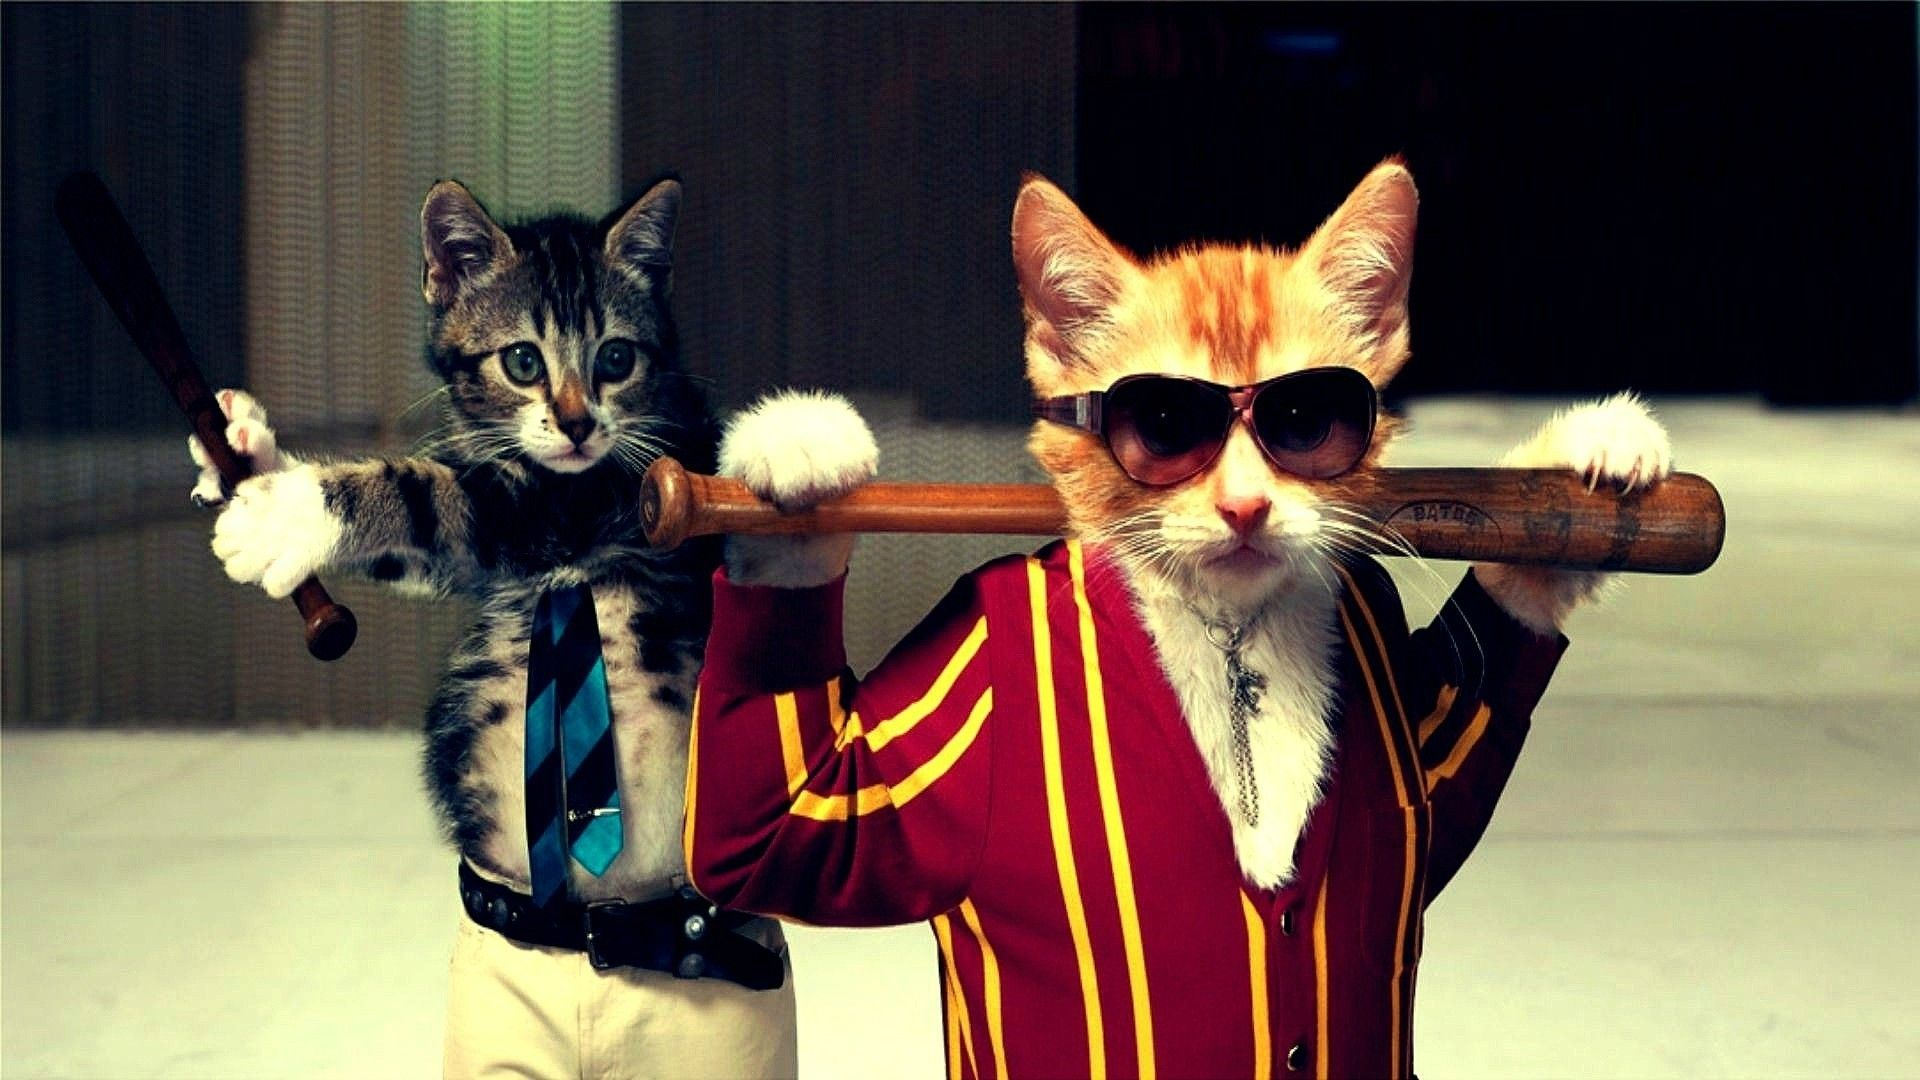 Gang Cats Wallpaper Funny Cat Wallpaper Cat Animal Pictures Funny Cat Images